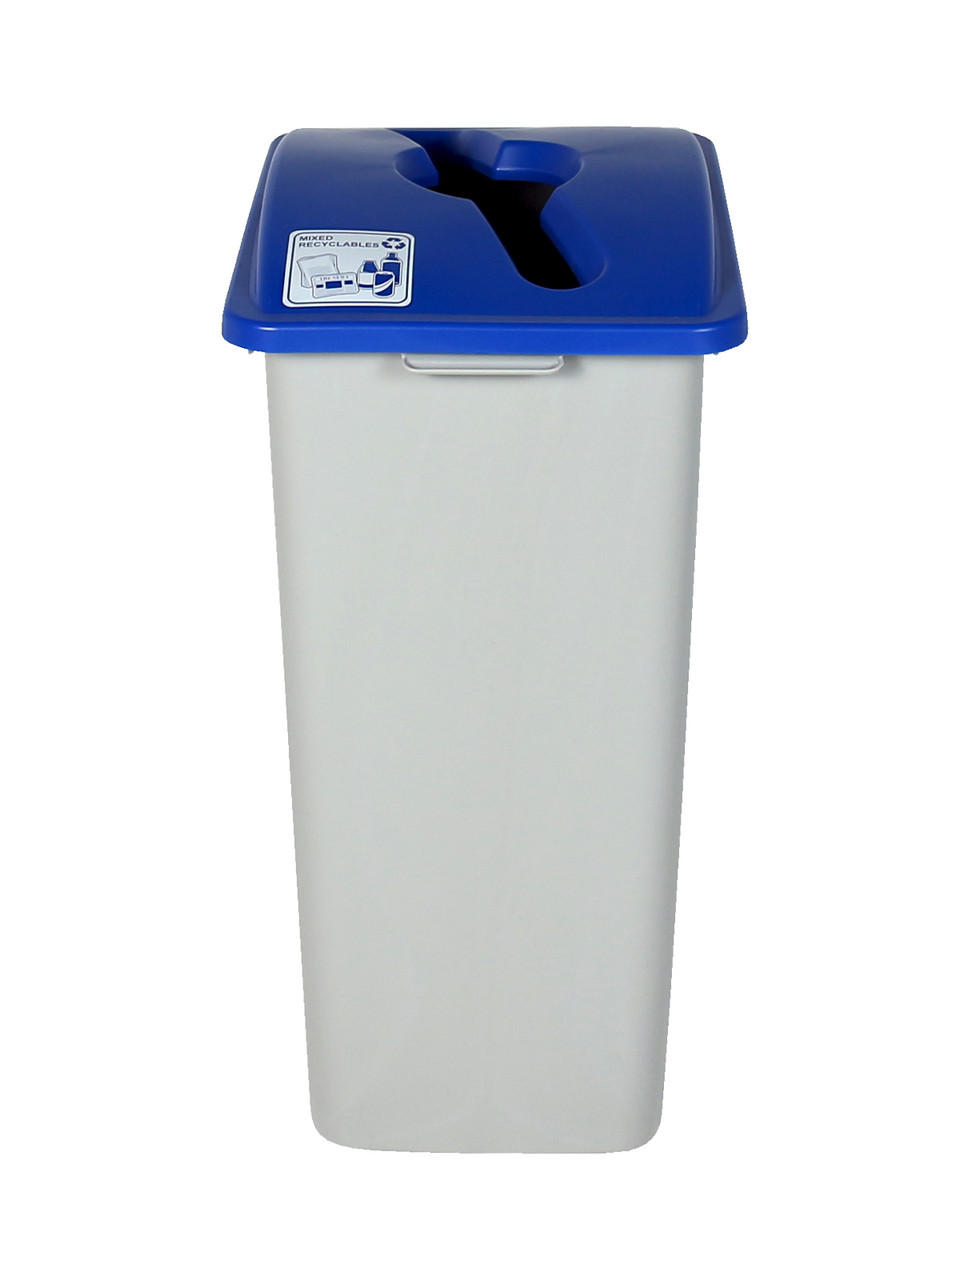 32 Gallon XL Recycling Bin (Mixed Recyclables)